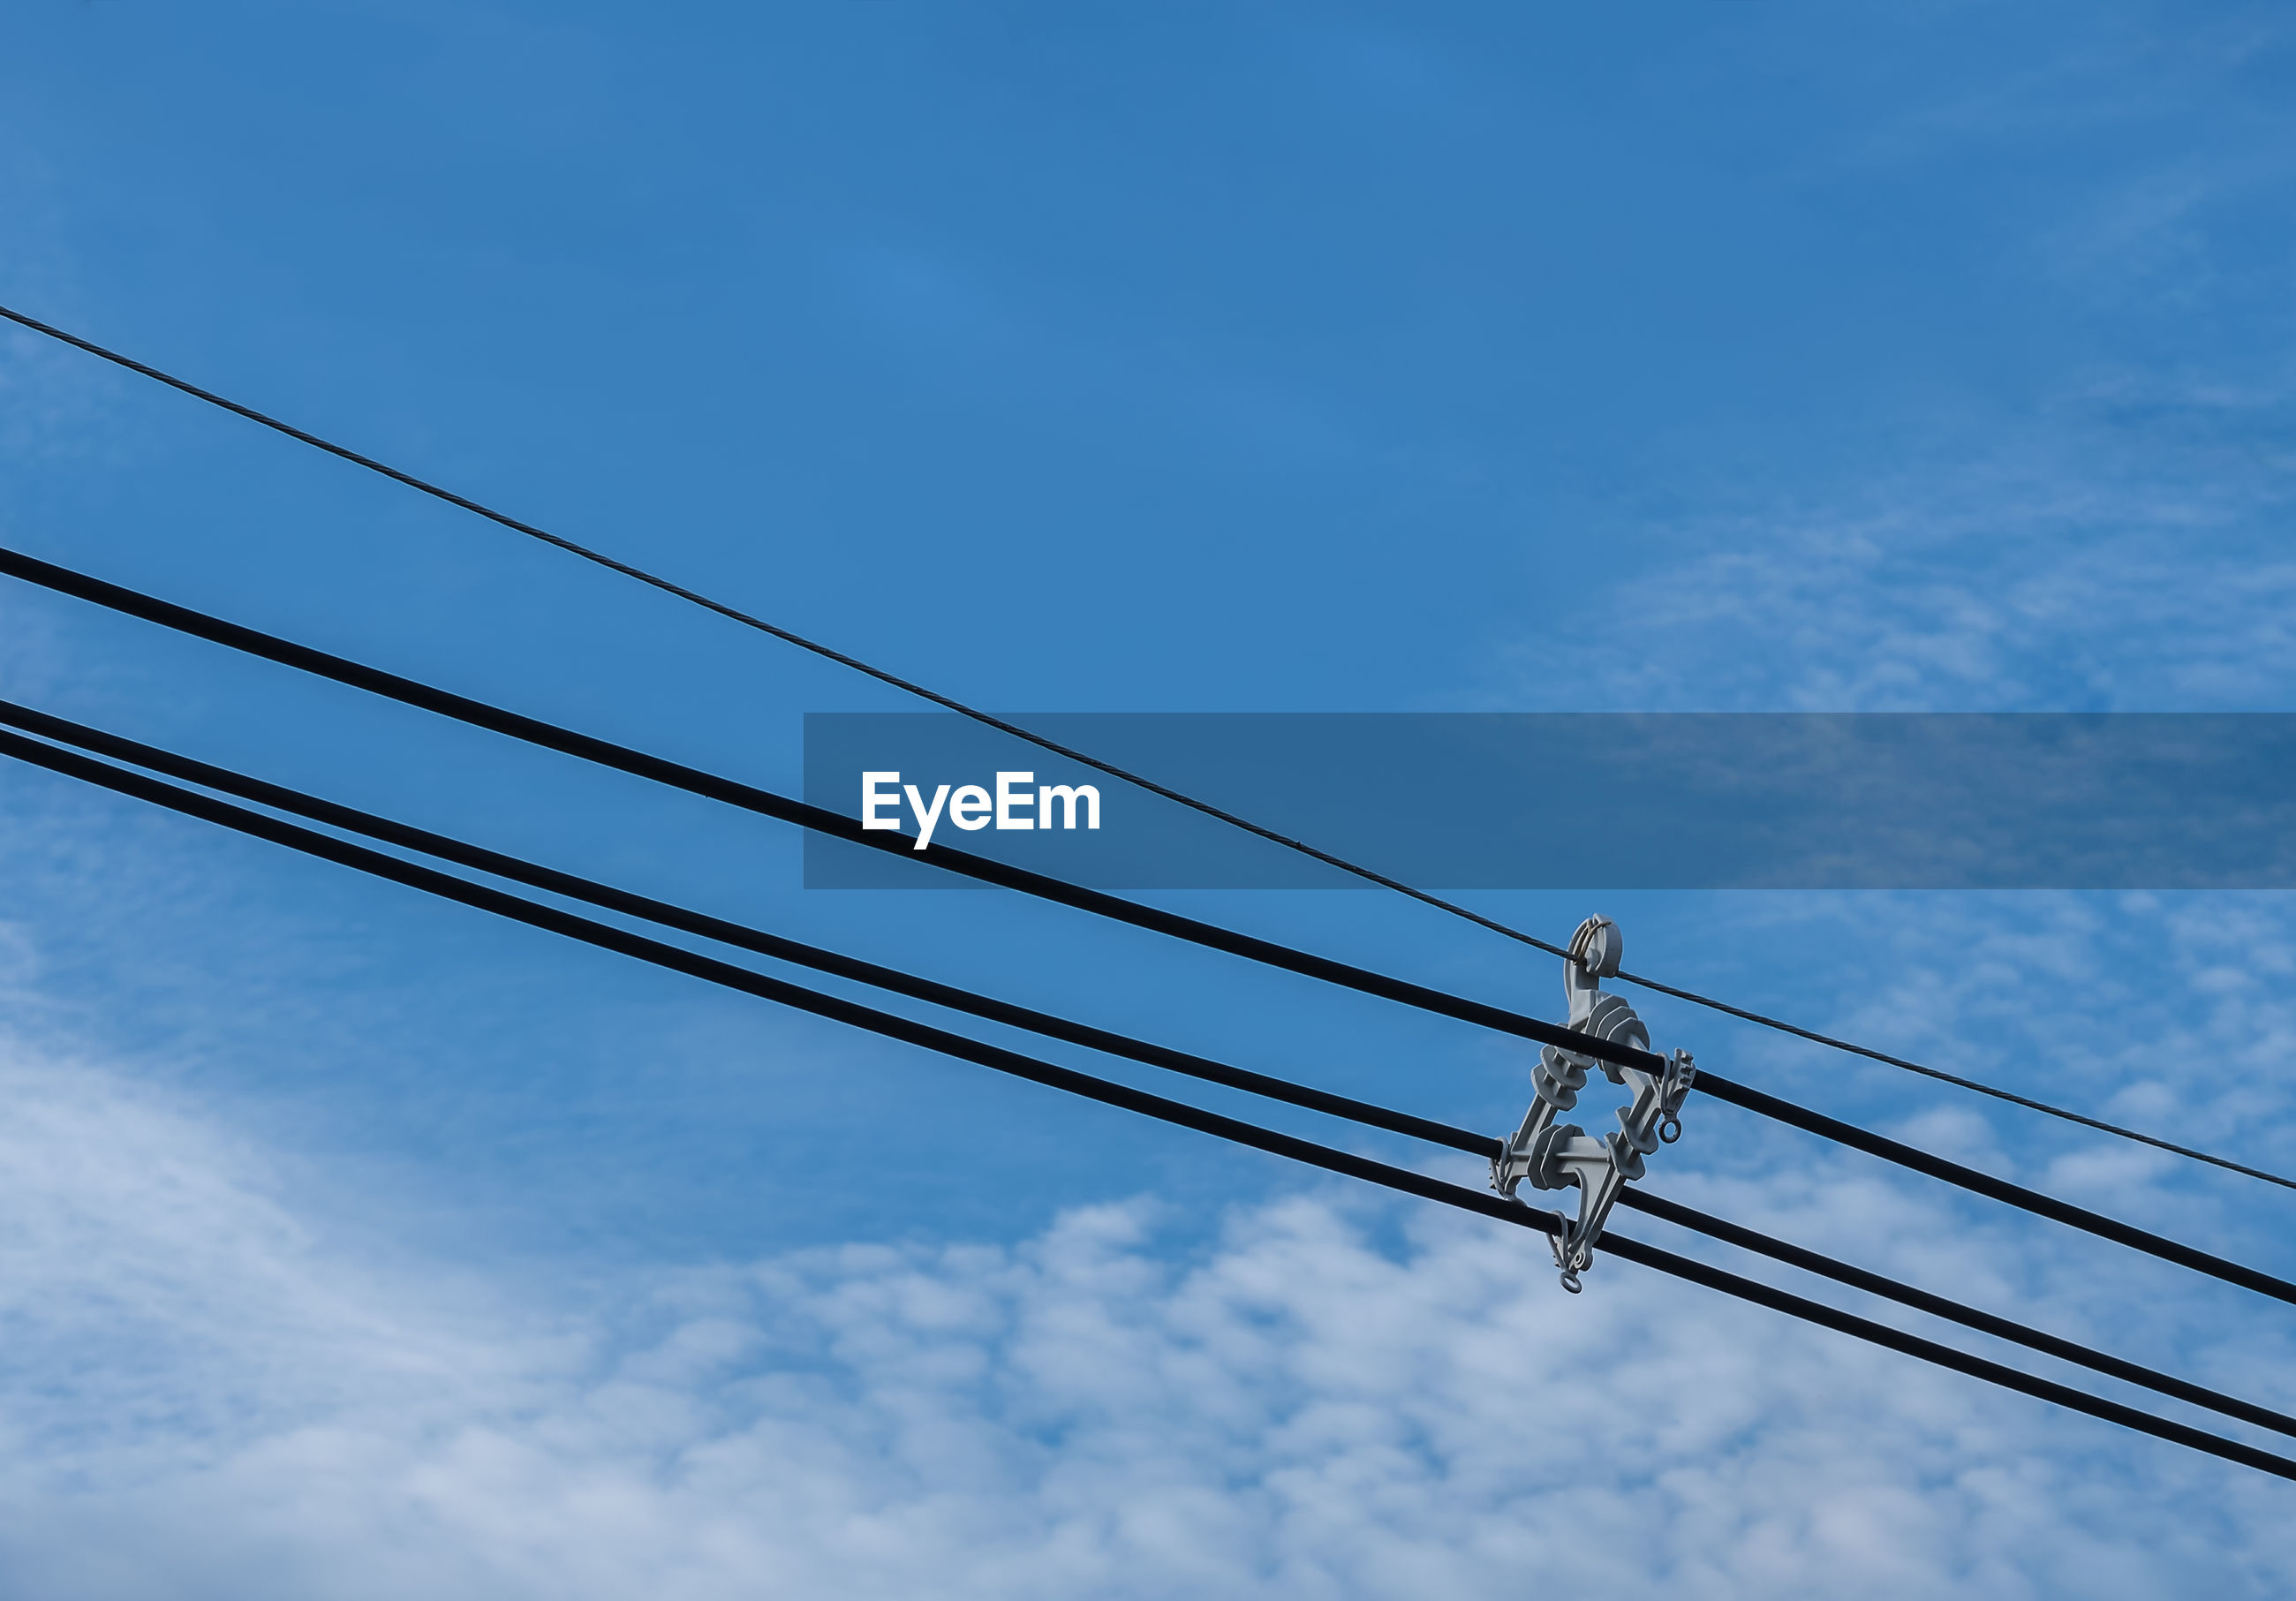 Low angle view of electricity cable against blue sky